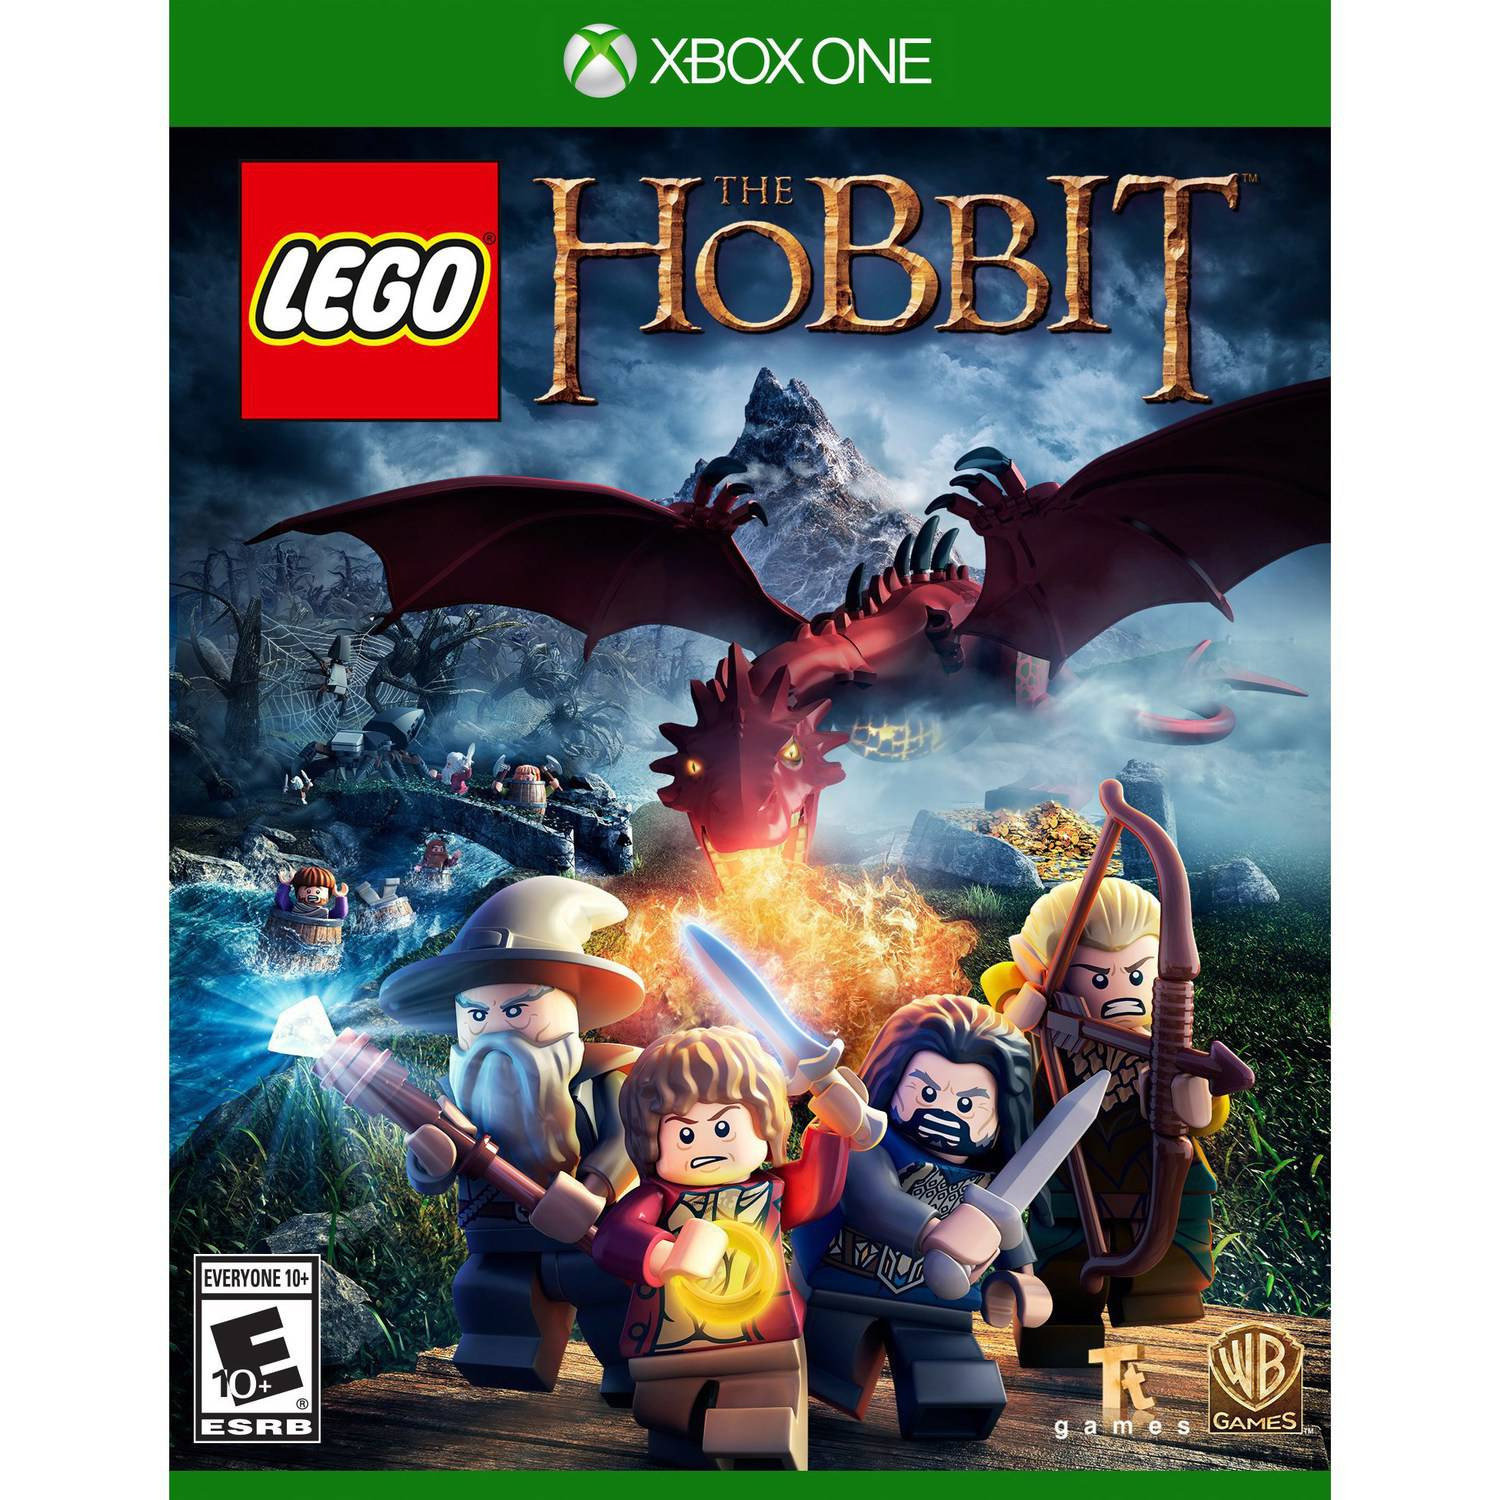 Lego The Hobbit (Xbox One) - Pre-Owned